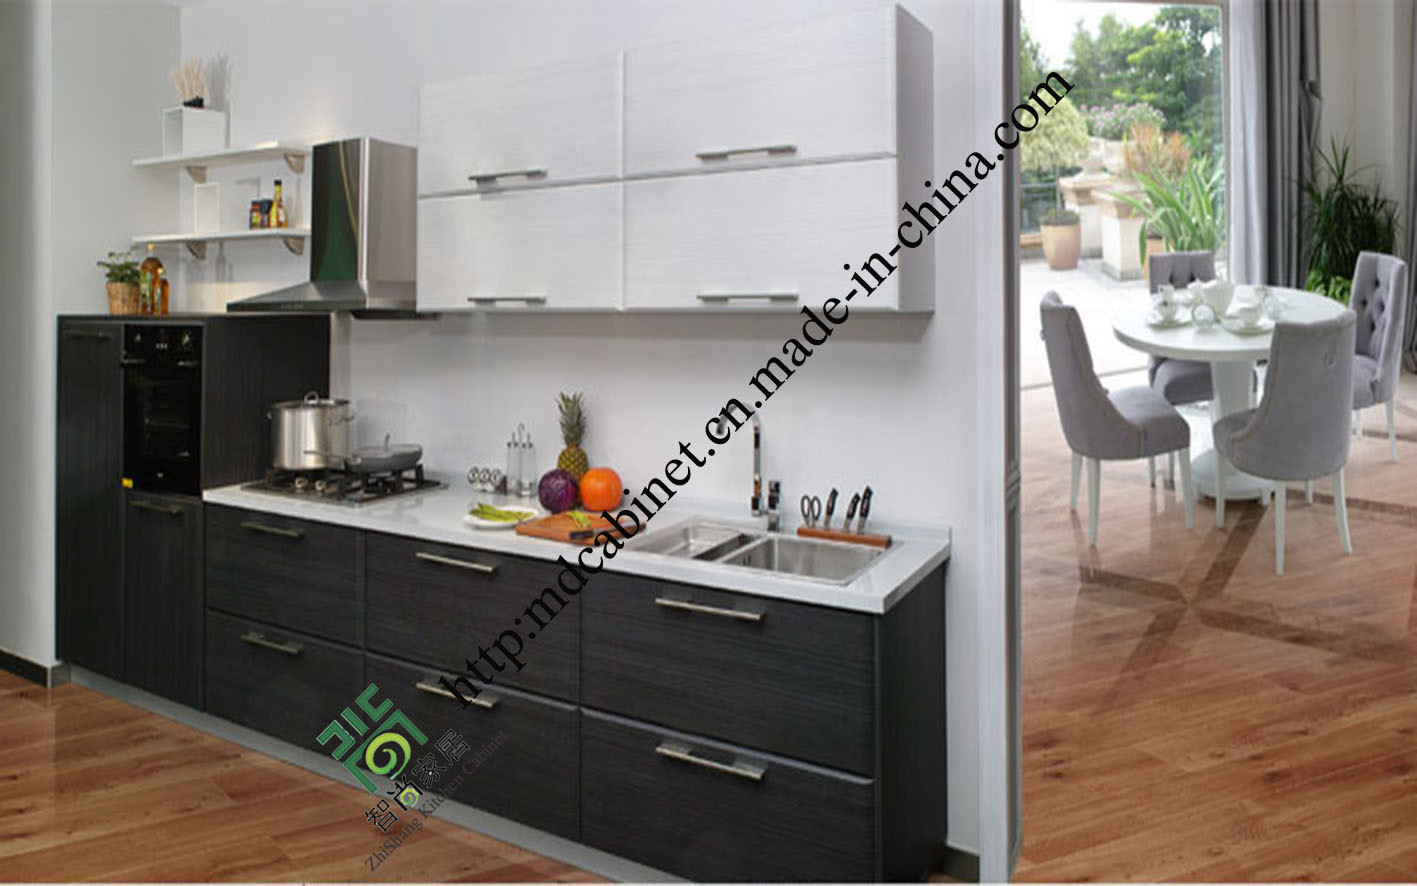 china melamine chipboard kitchen cabinet zs 391 photos pictures made in. Black Bedroom Furniture Sets. Home Design Ideas